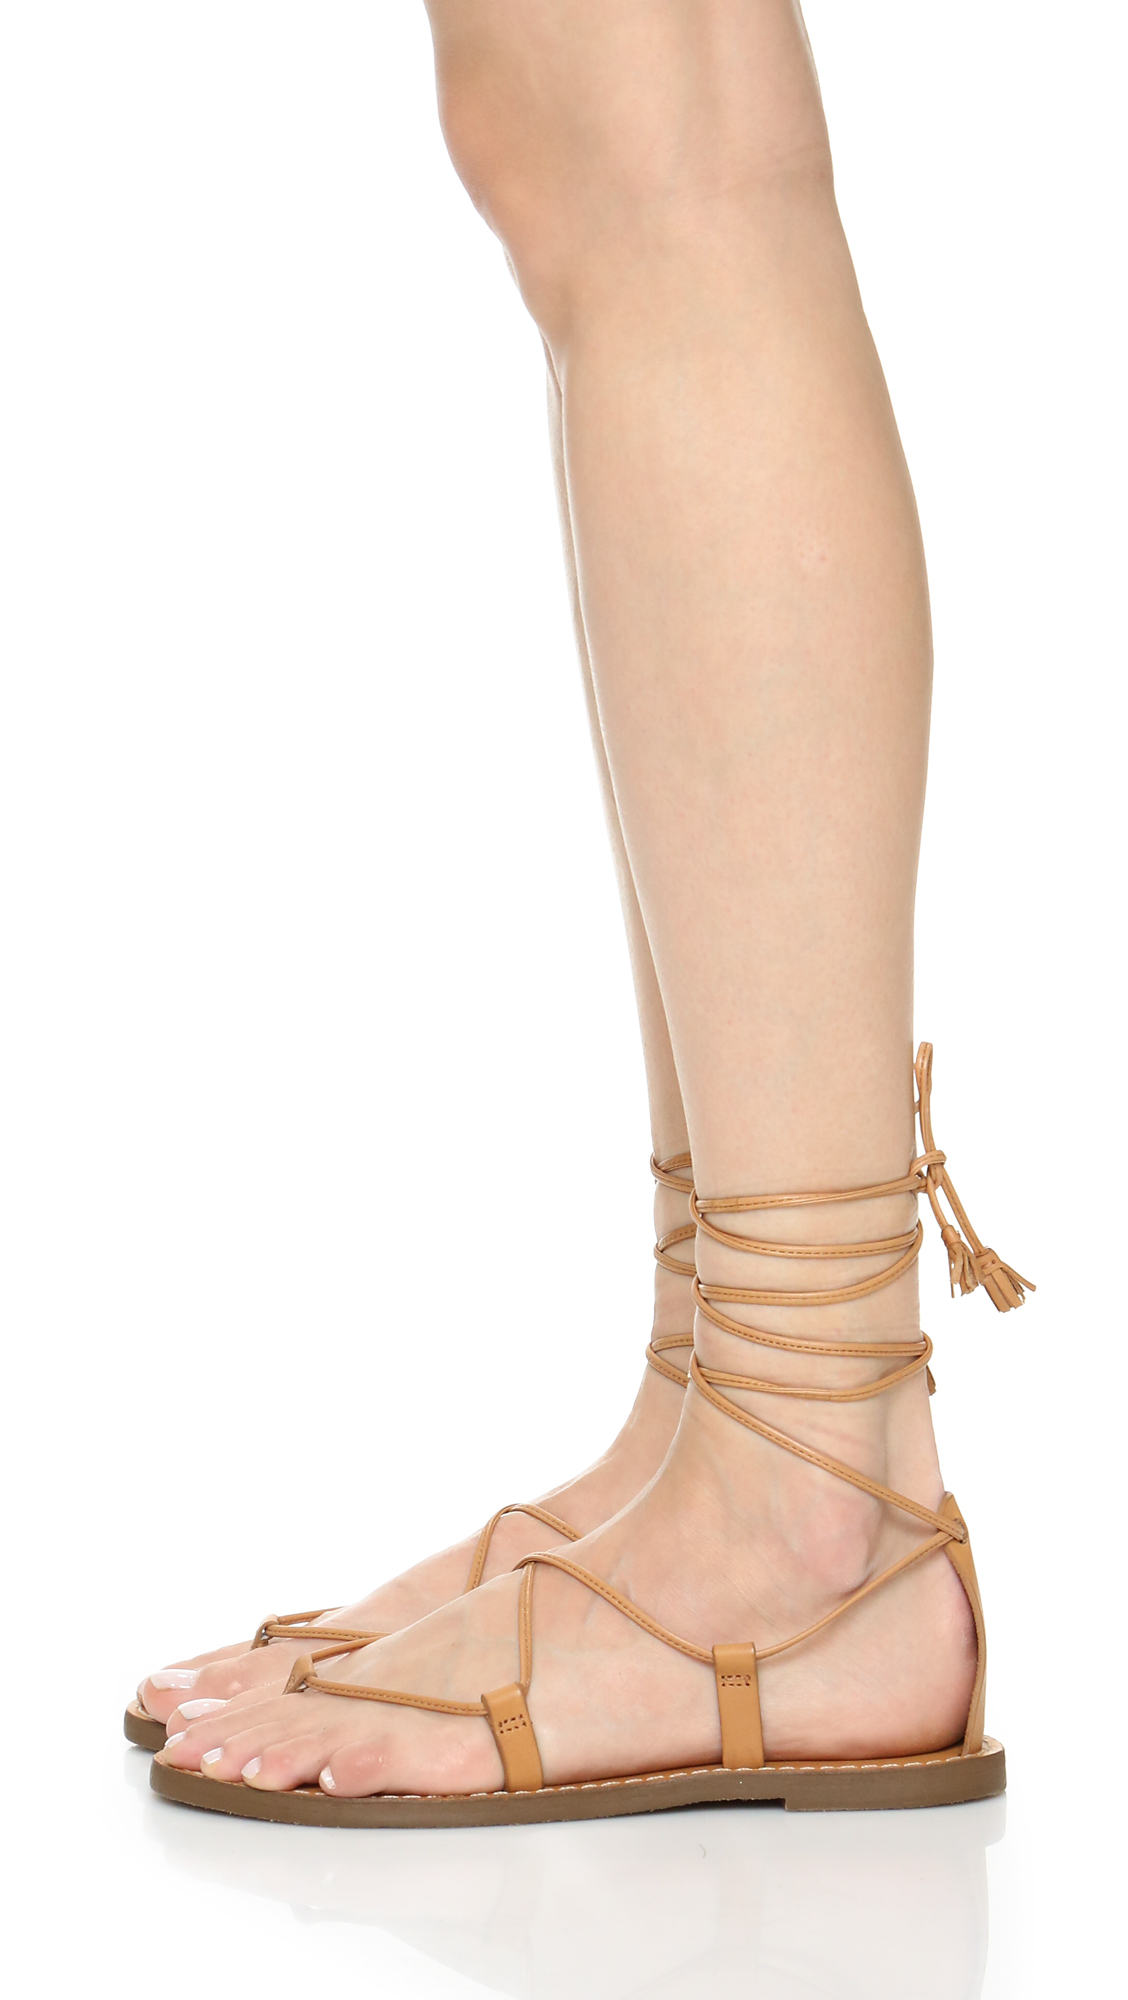 f351261f0e35 Madewell Kana Lace Up Gladiator Sandals